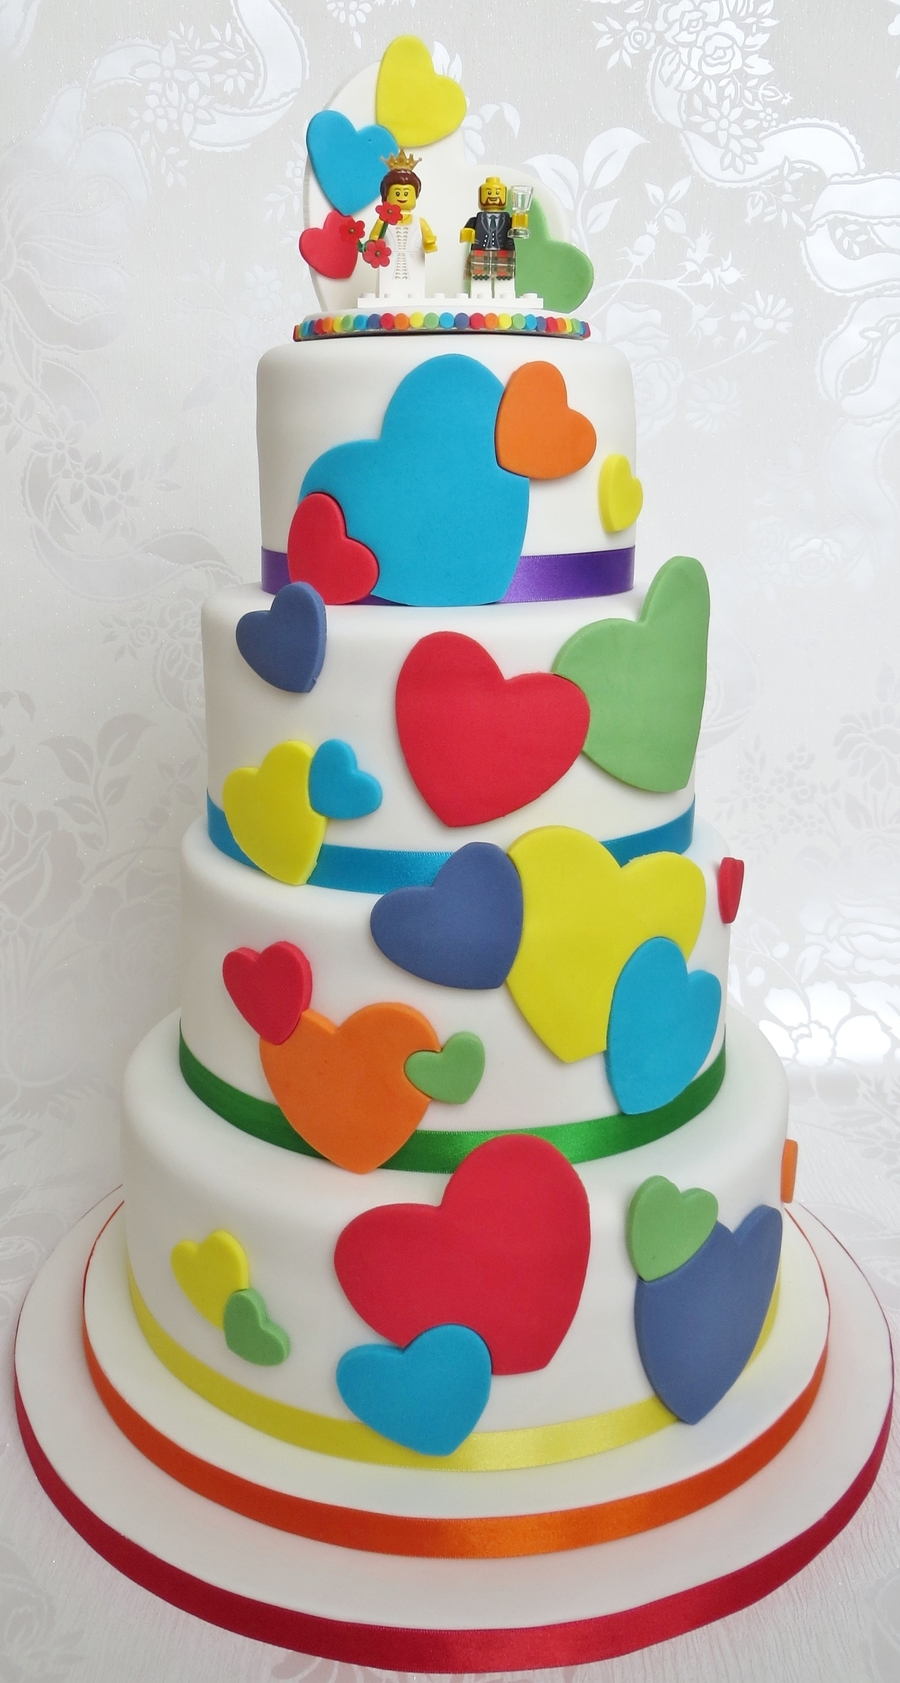 Rainbow Heart Wedding Cake With Lego Topper - CakeCentral.com